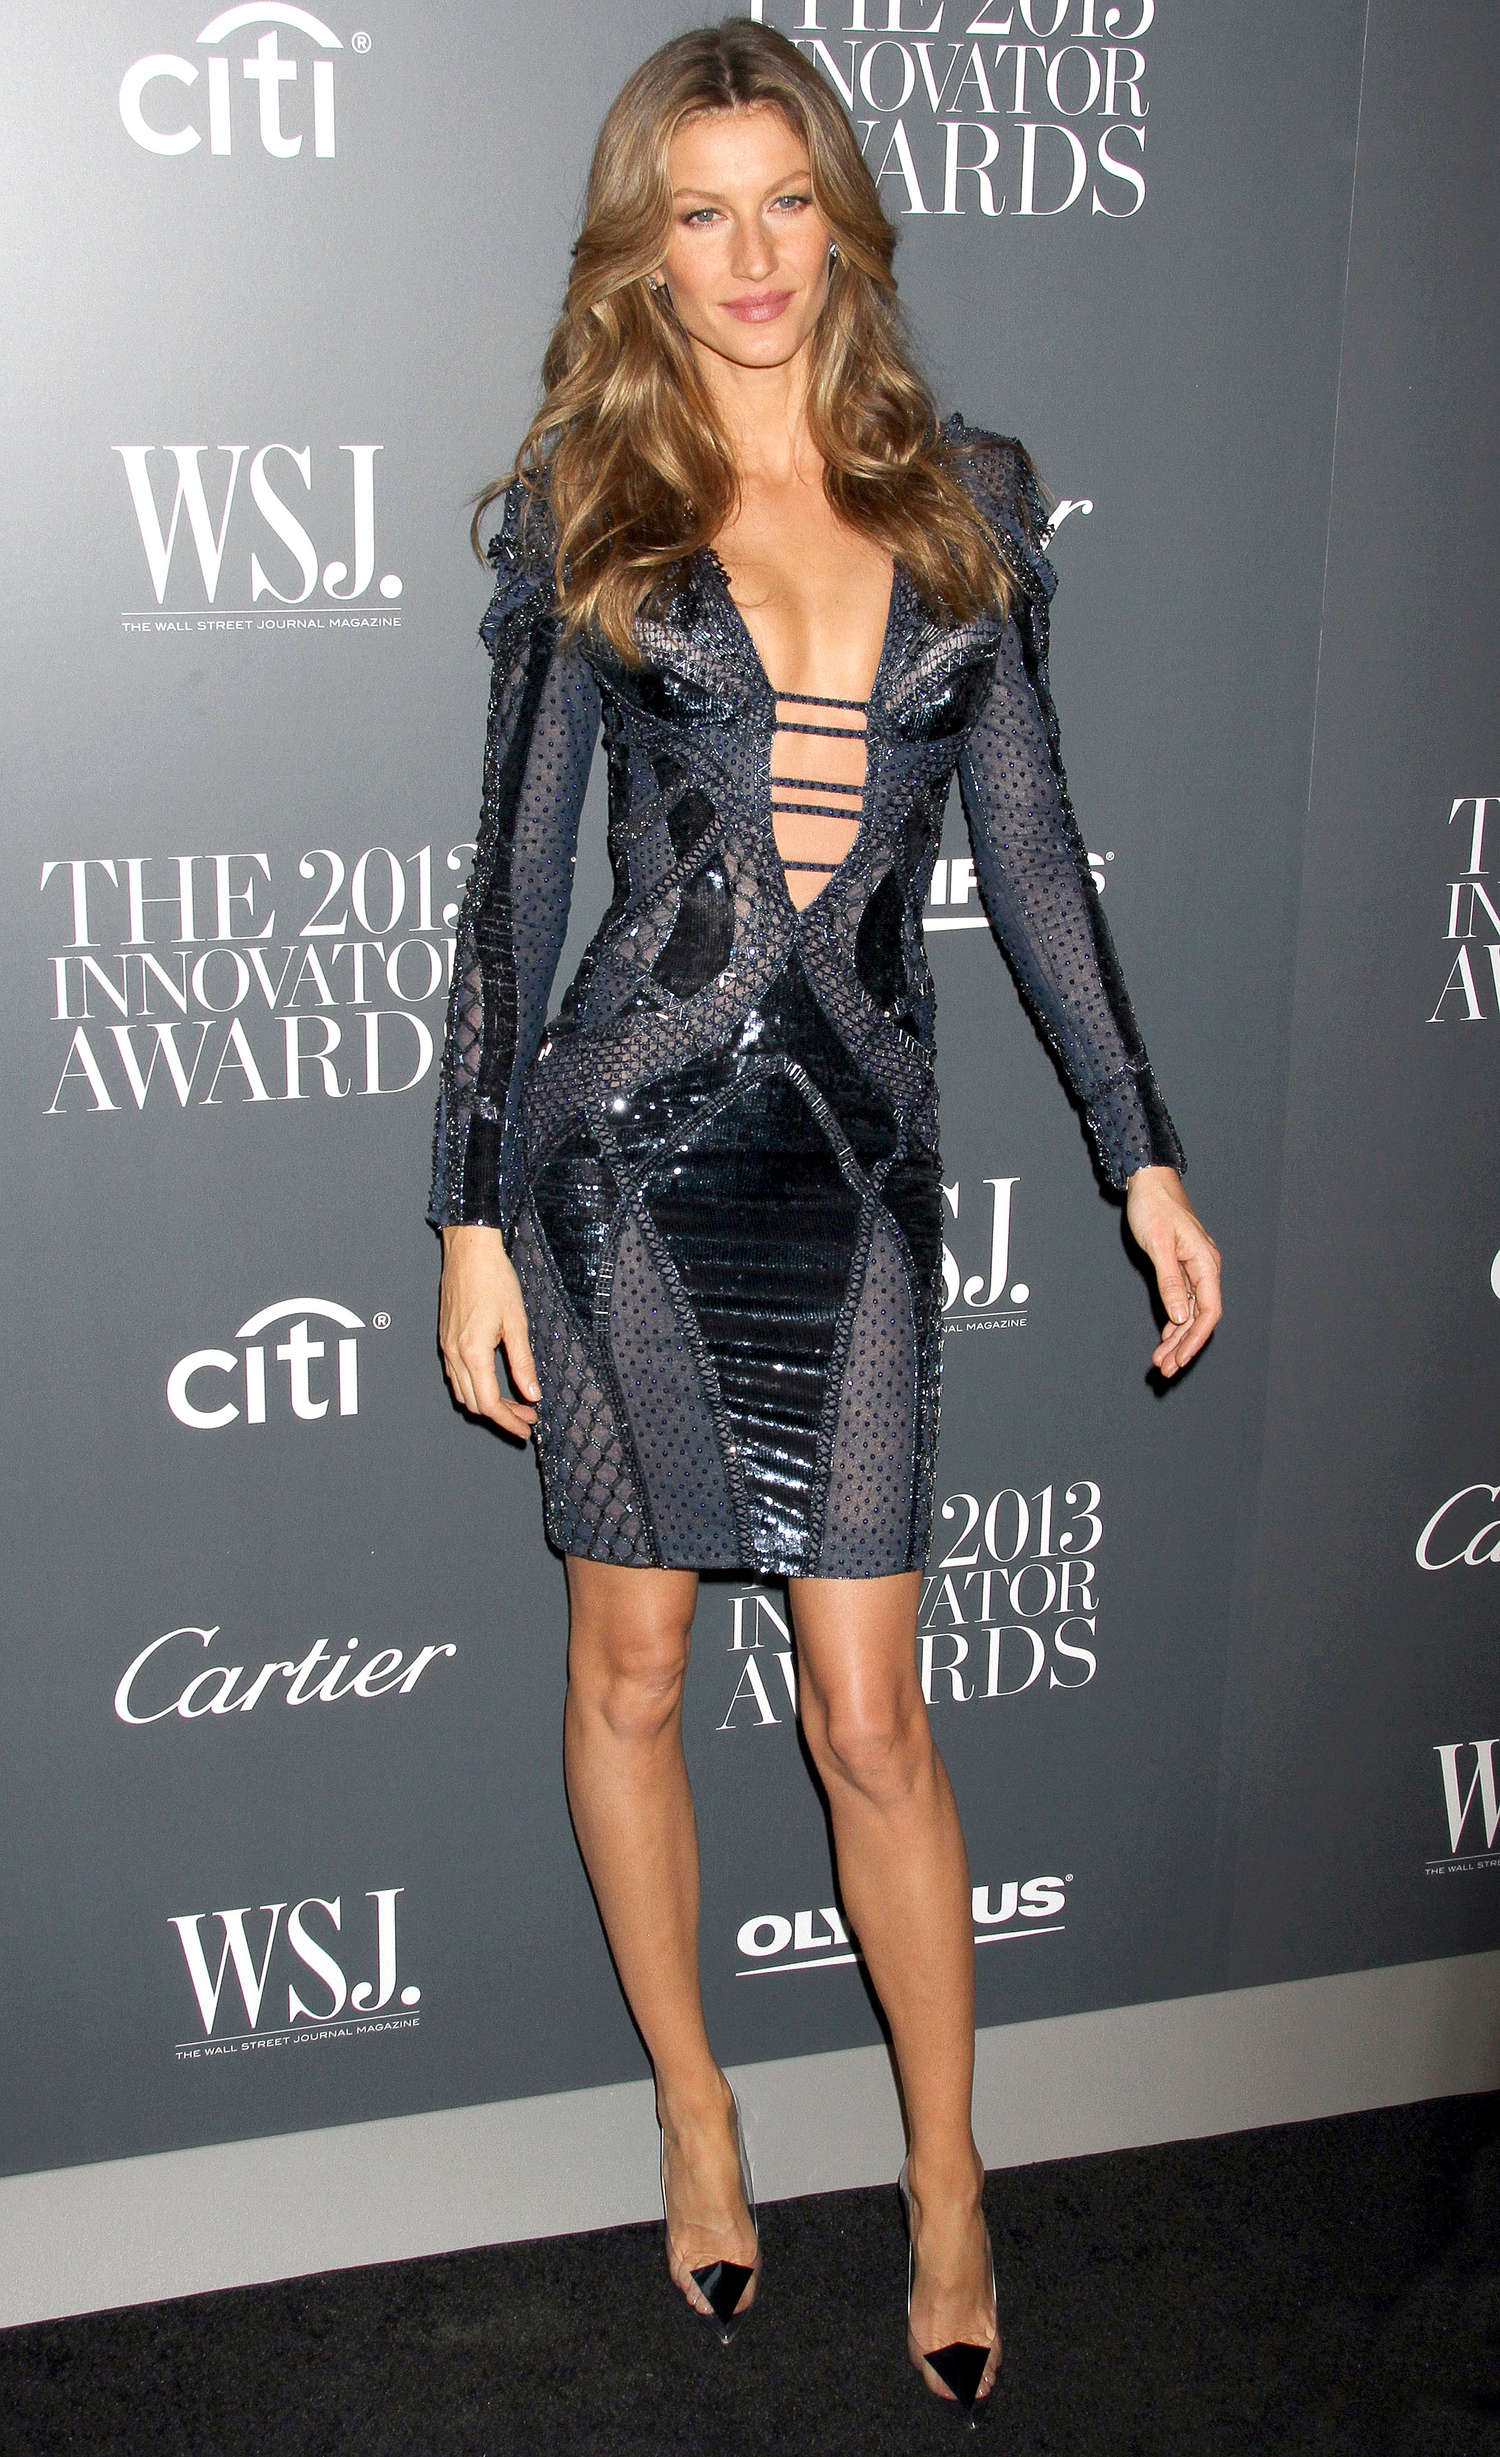 https://www.gotceleb.com/wp-content/uploads/celebrities/gisele-bundchen/2013-innovator-of-the-year-awards-in-new-york/Gisele-Bundchen:-2013-Innovator-of-the-Year-Awards--04.jpg